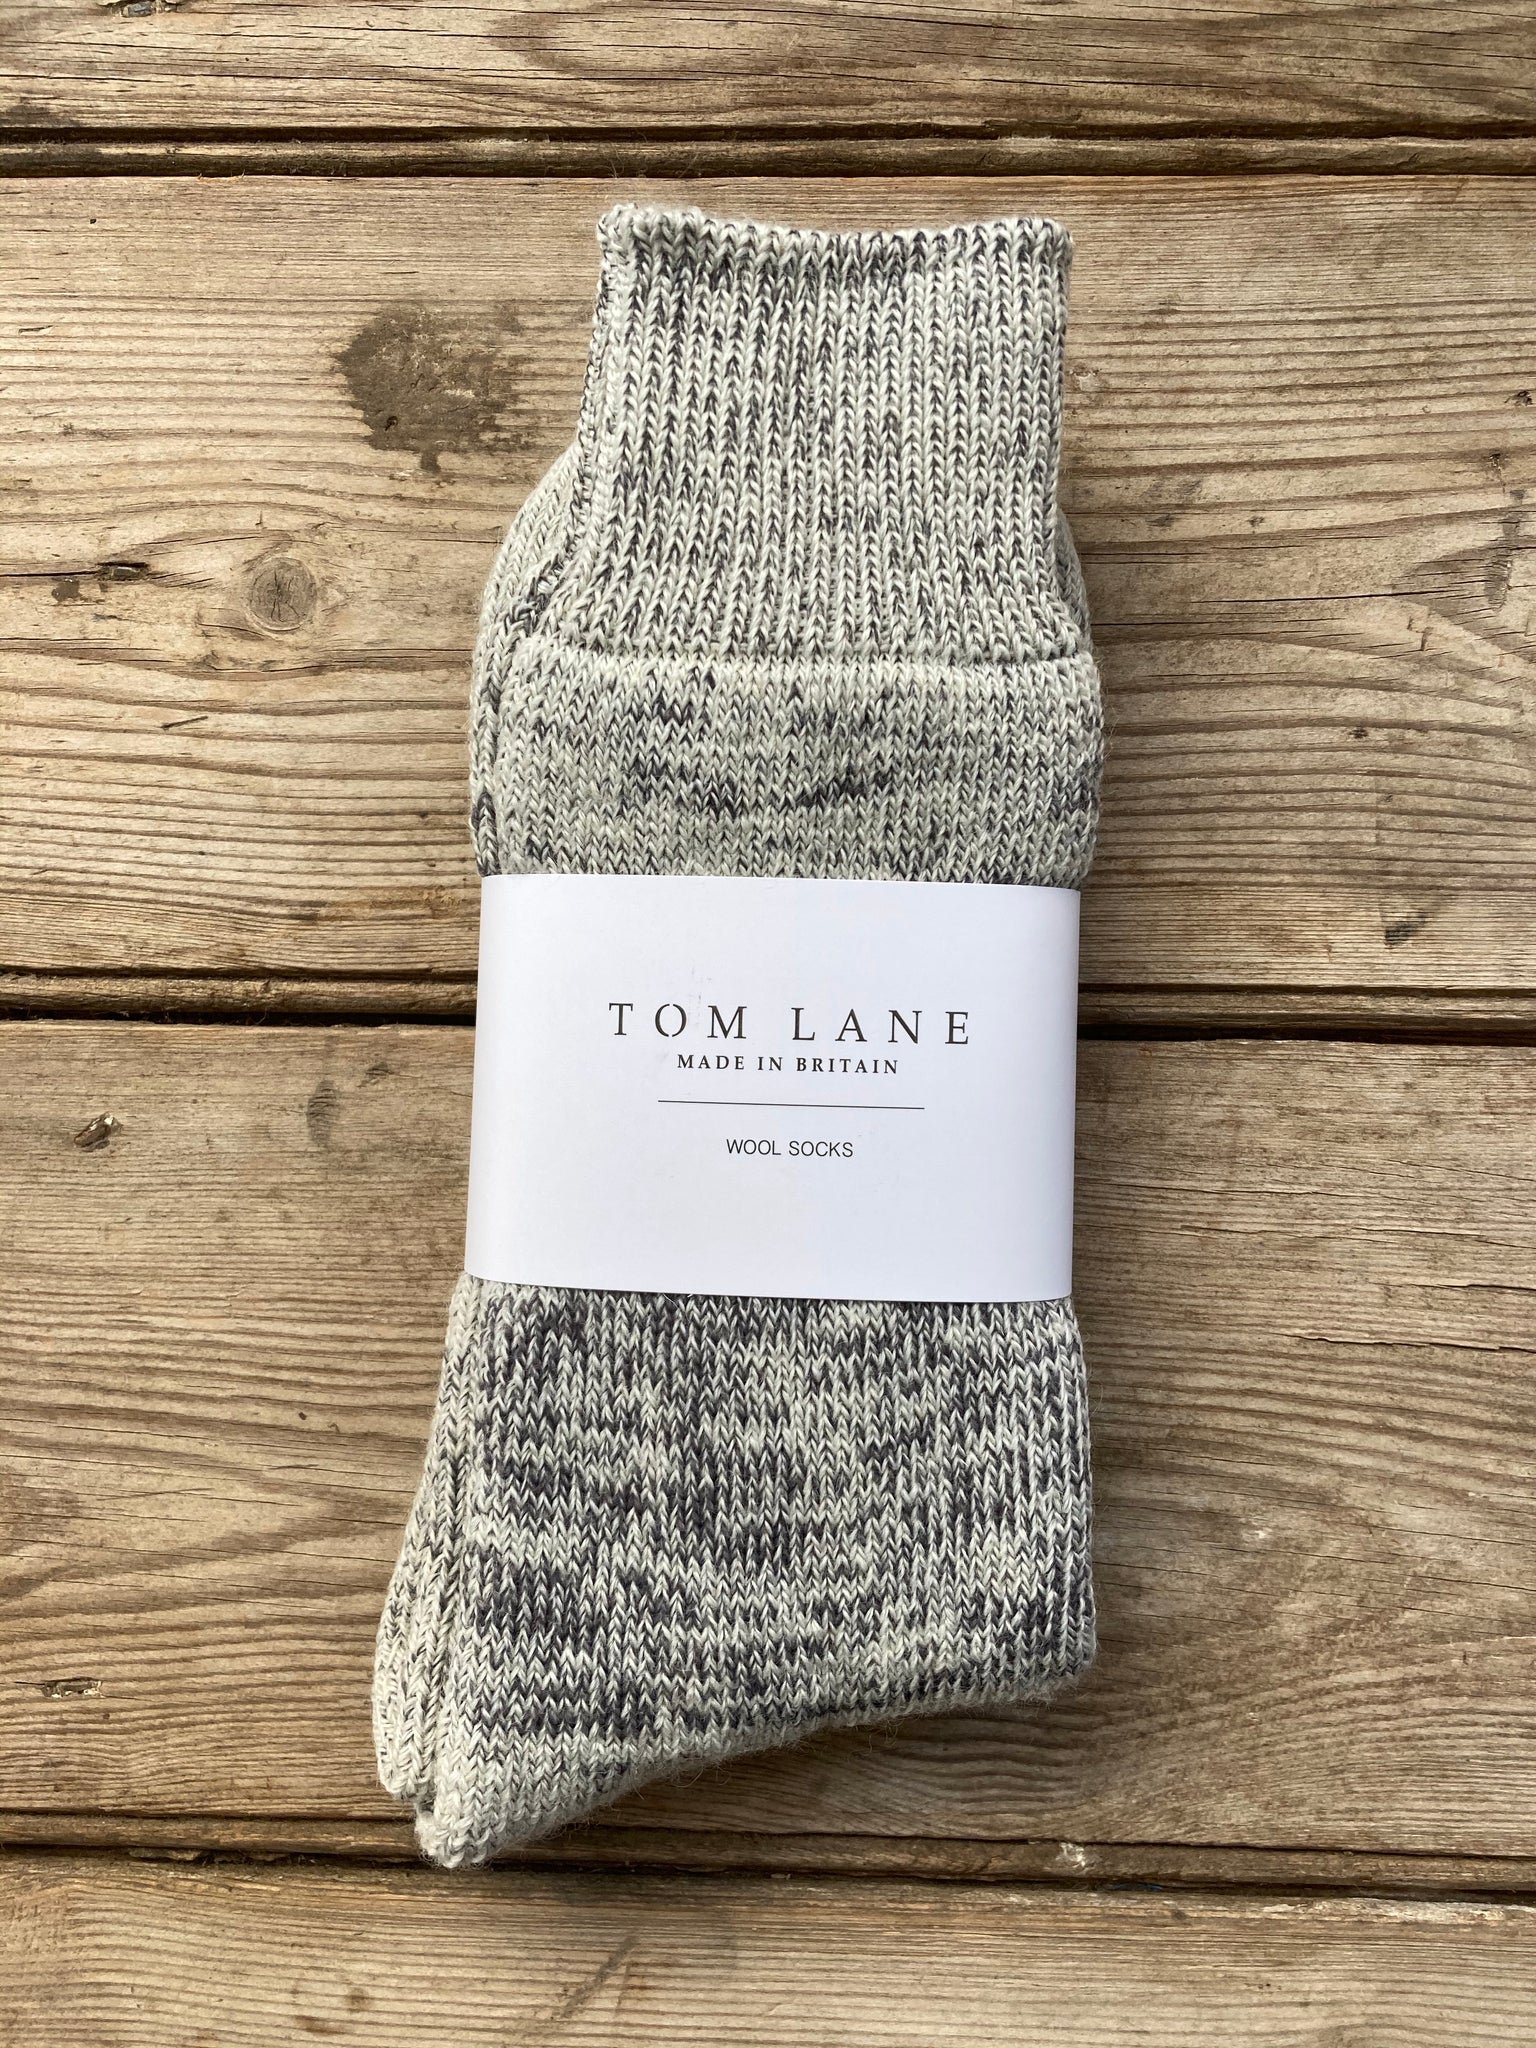 Tom Lane wool blend socks